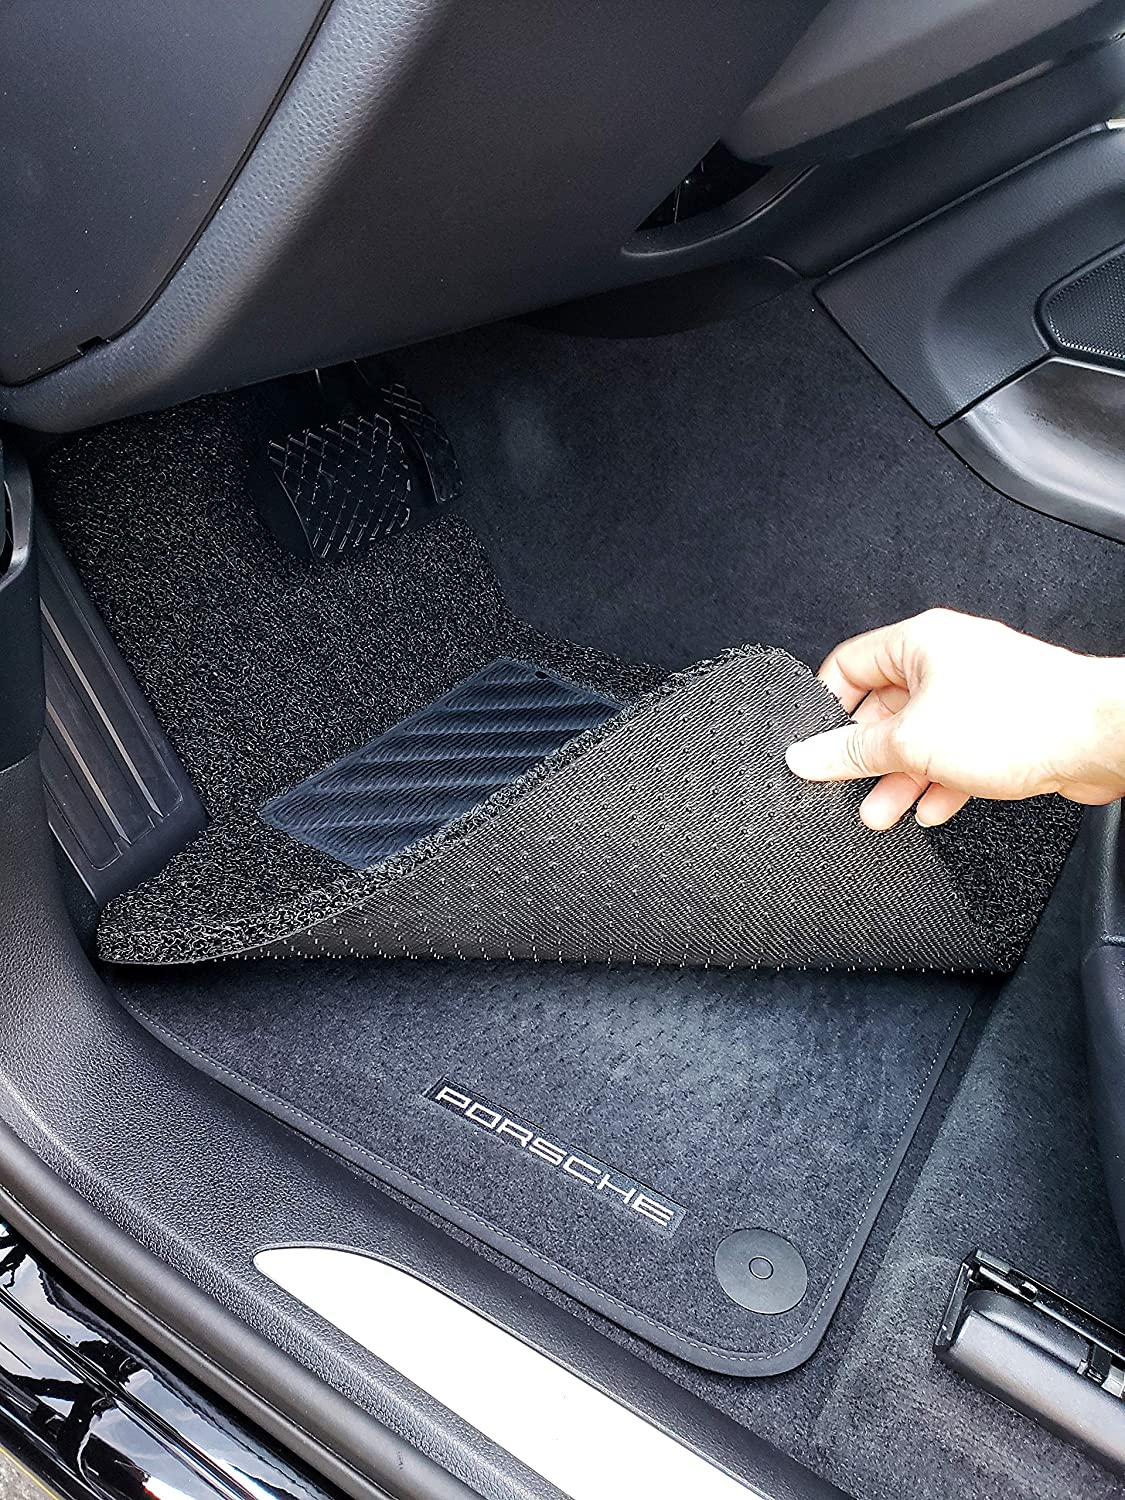 Autotech Zone Custom Fit Heavy Duty Custom Fit Car Floor Mat for 2011-2016 Kia Sportage All Weather Protector 4 Pieces Set Black